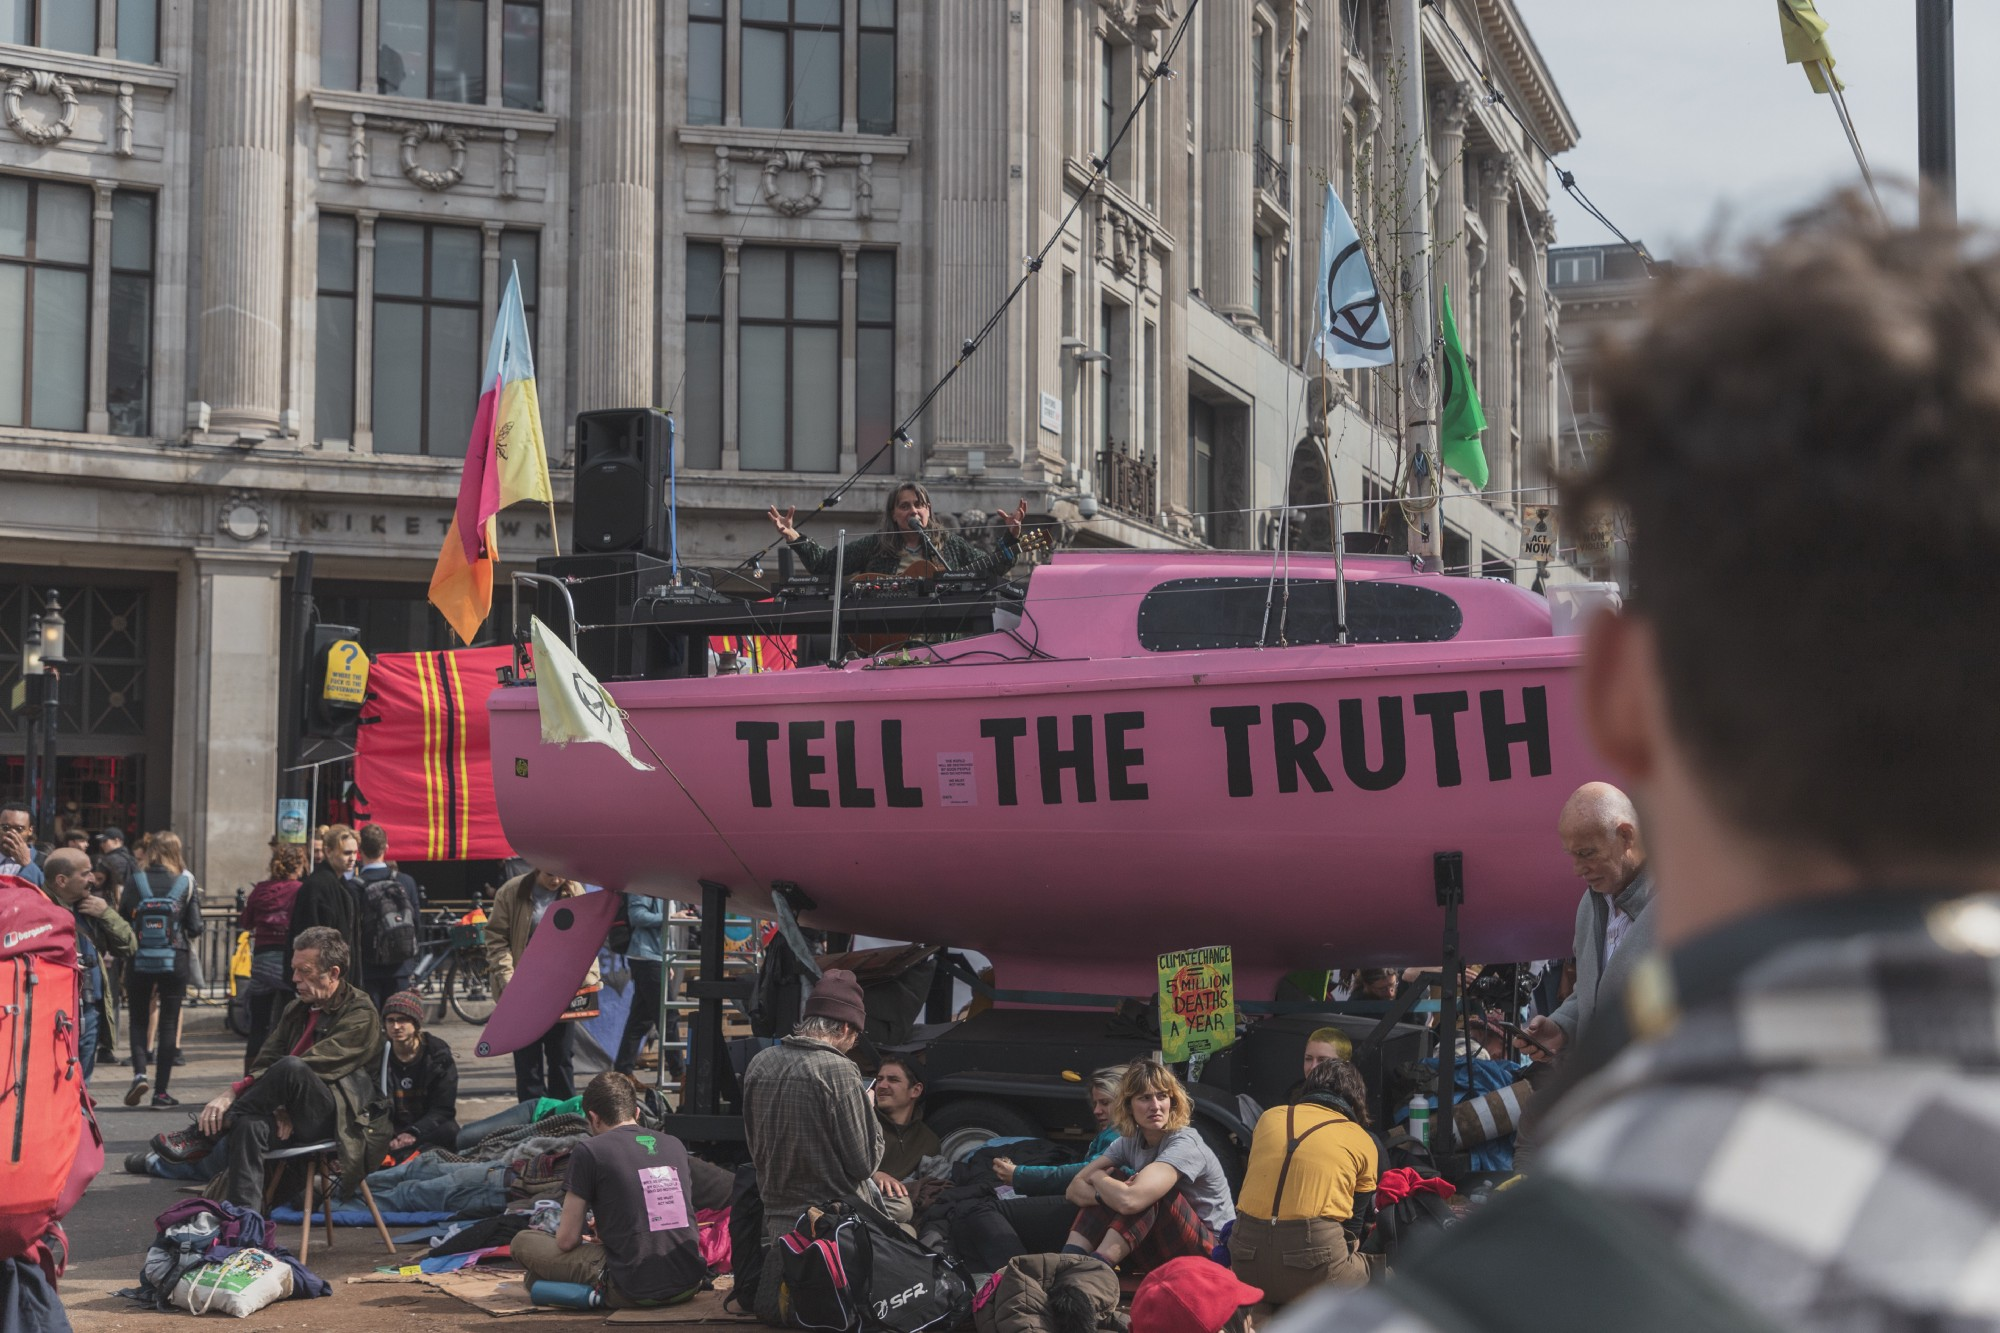 In front of an office building protestors sit in front of a pink water vessel with 'tell the truth' in large black letters.